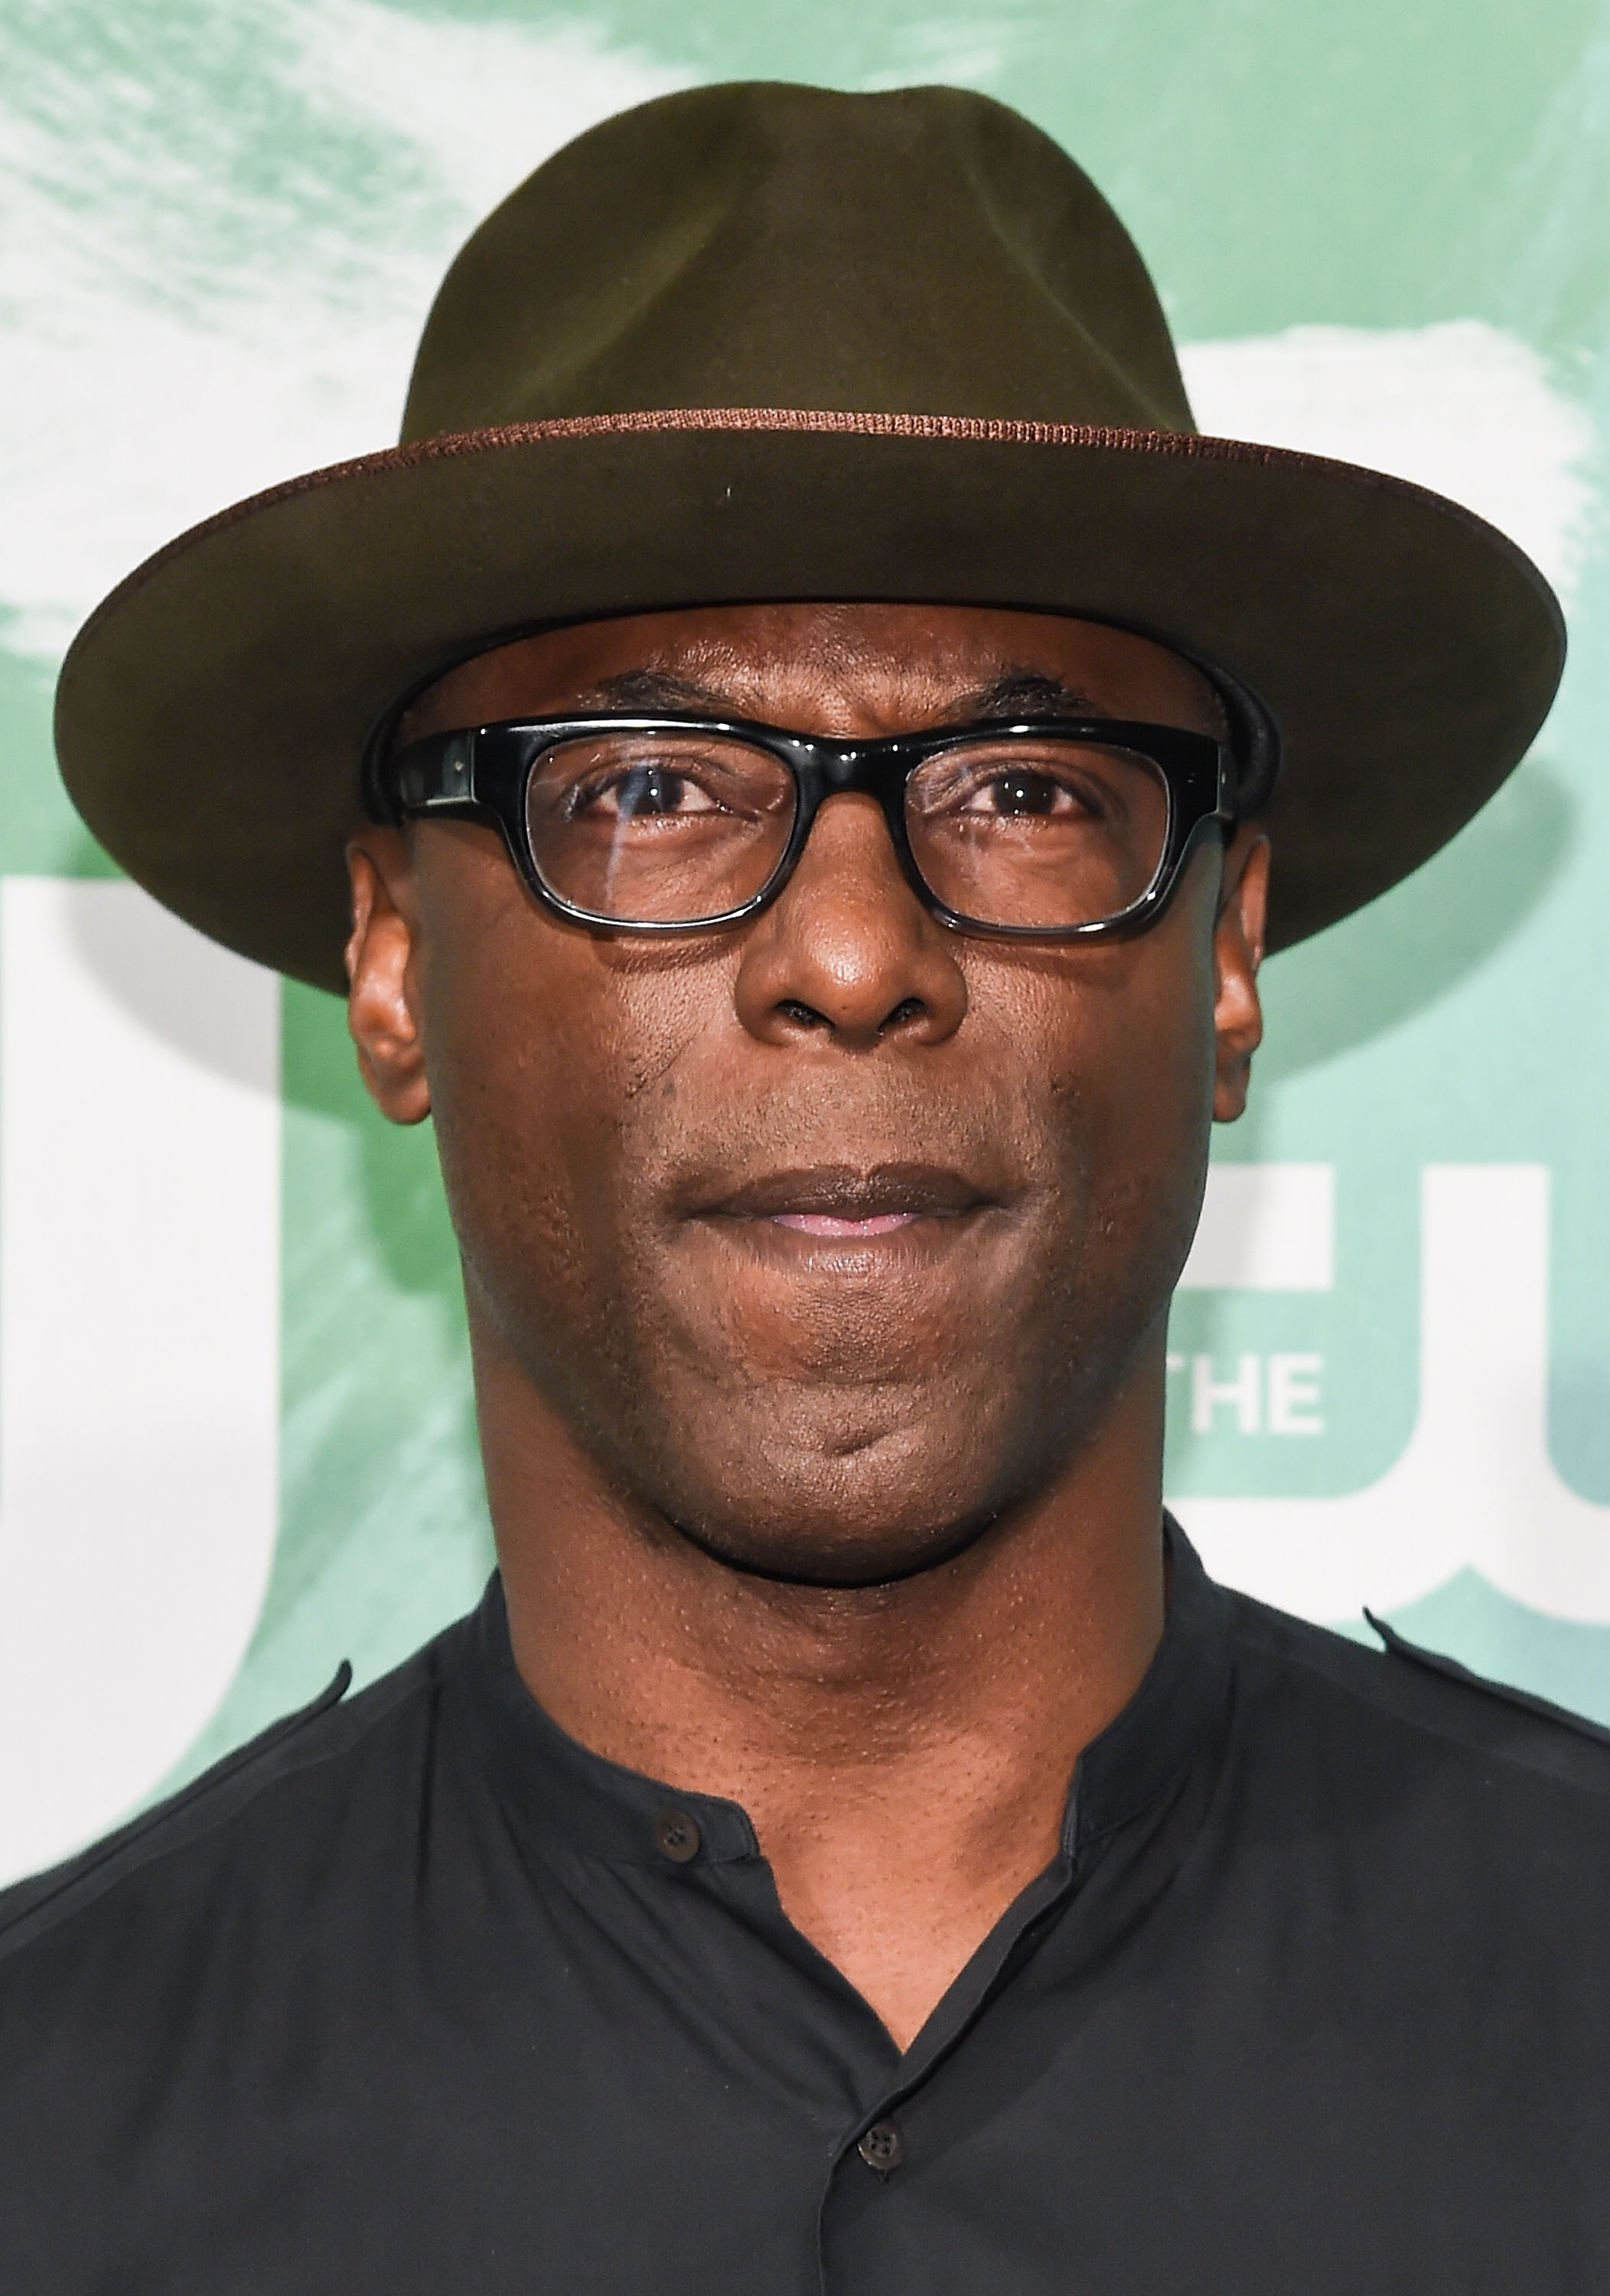 Isaiah Washington of the series 'The 100' attends The CW Network's 2016 New York Upfront at The London Hotel on May 19, 2016 in New York City.  Daniel Zuchnik—WireImage